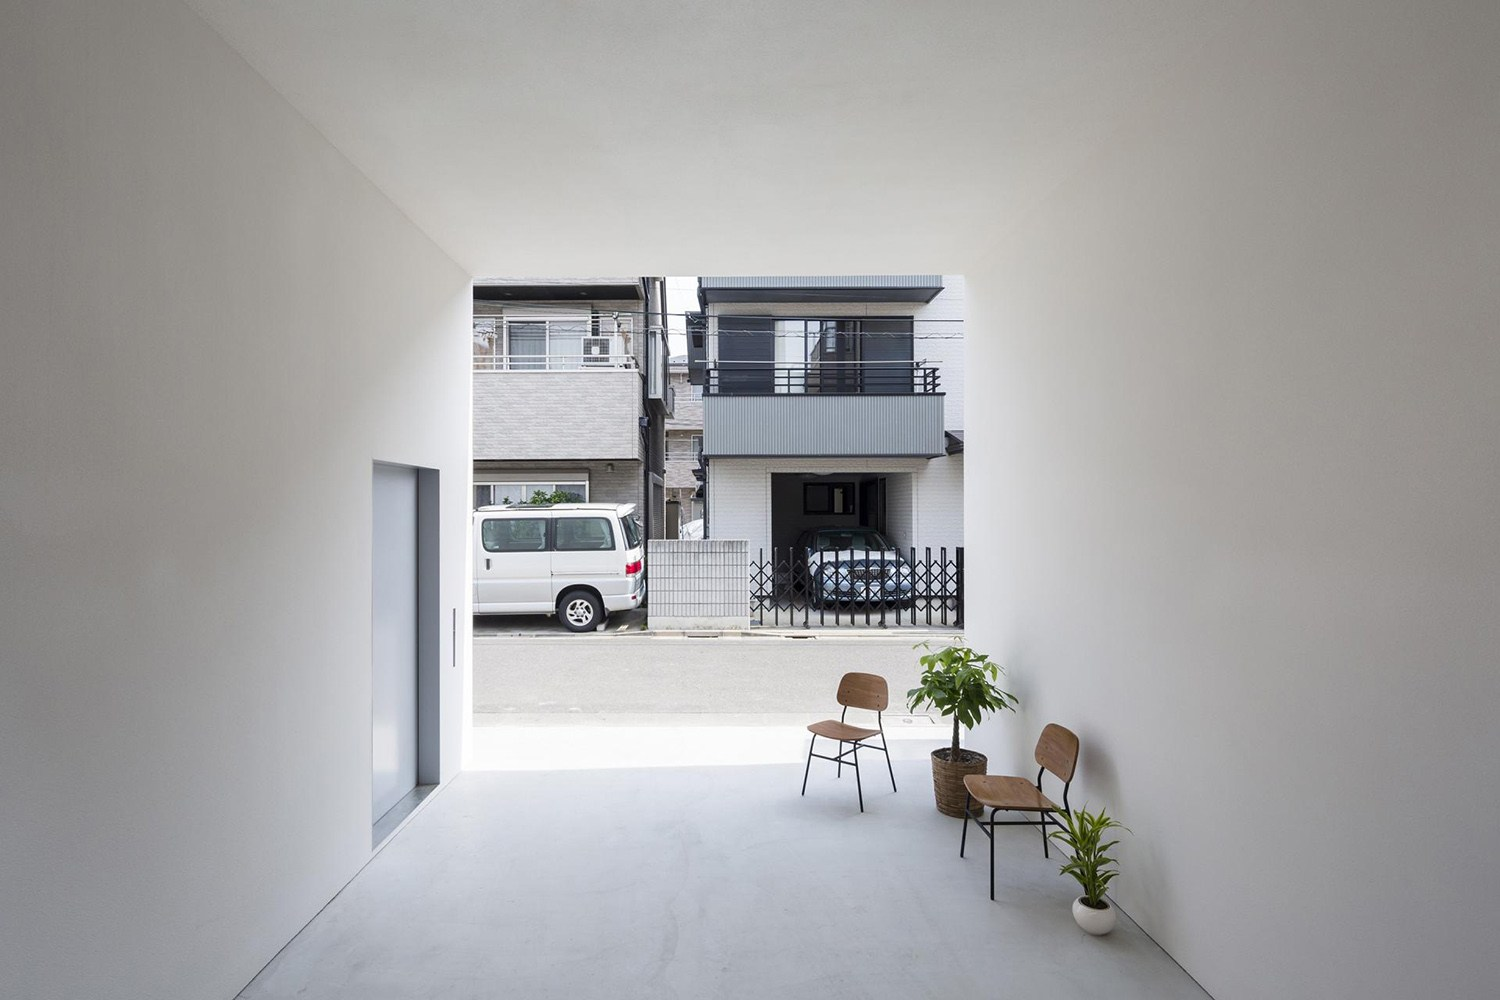 little_house_with_a_big_terrace_by_takuro_yamamoto_3.jpg